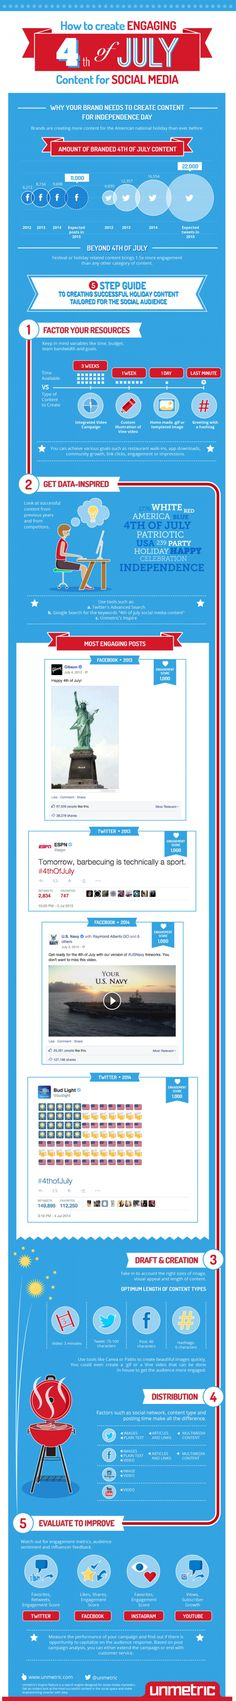 how to create engaging social media content for the 4th of july infographic power of